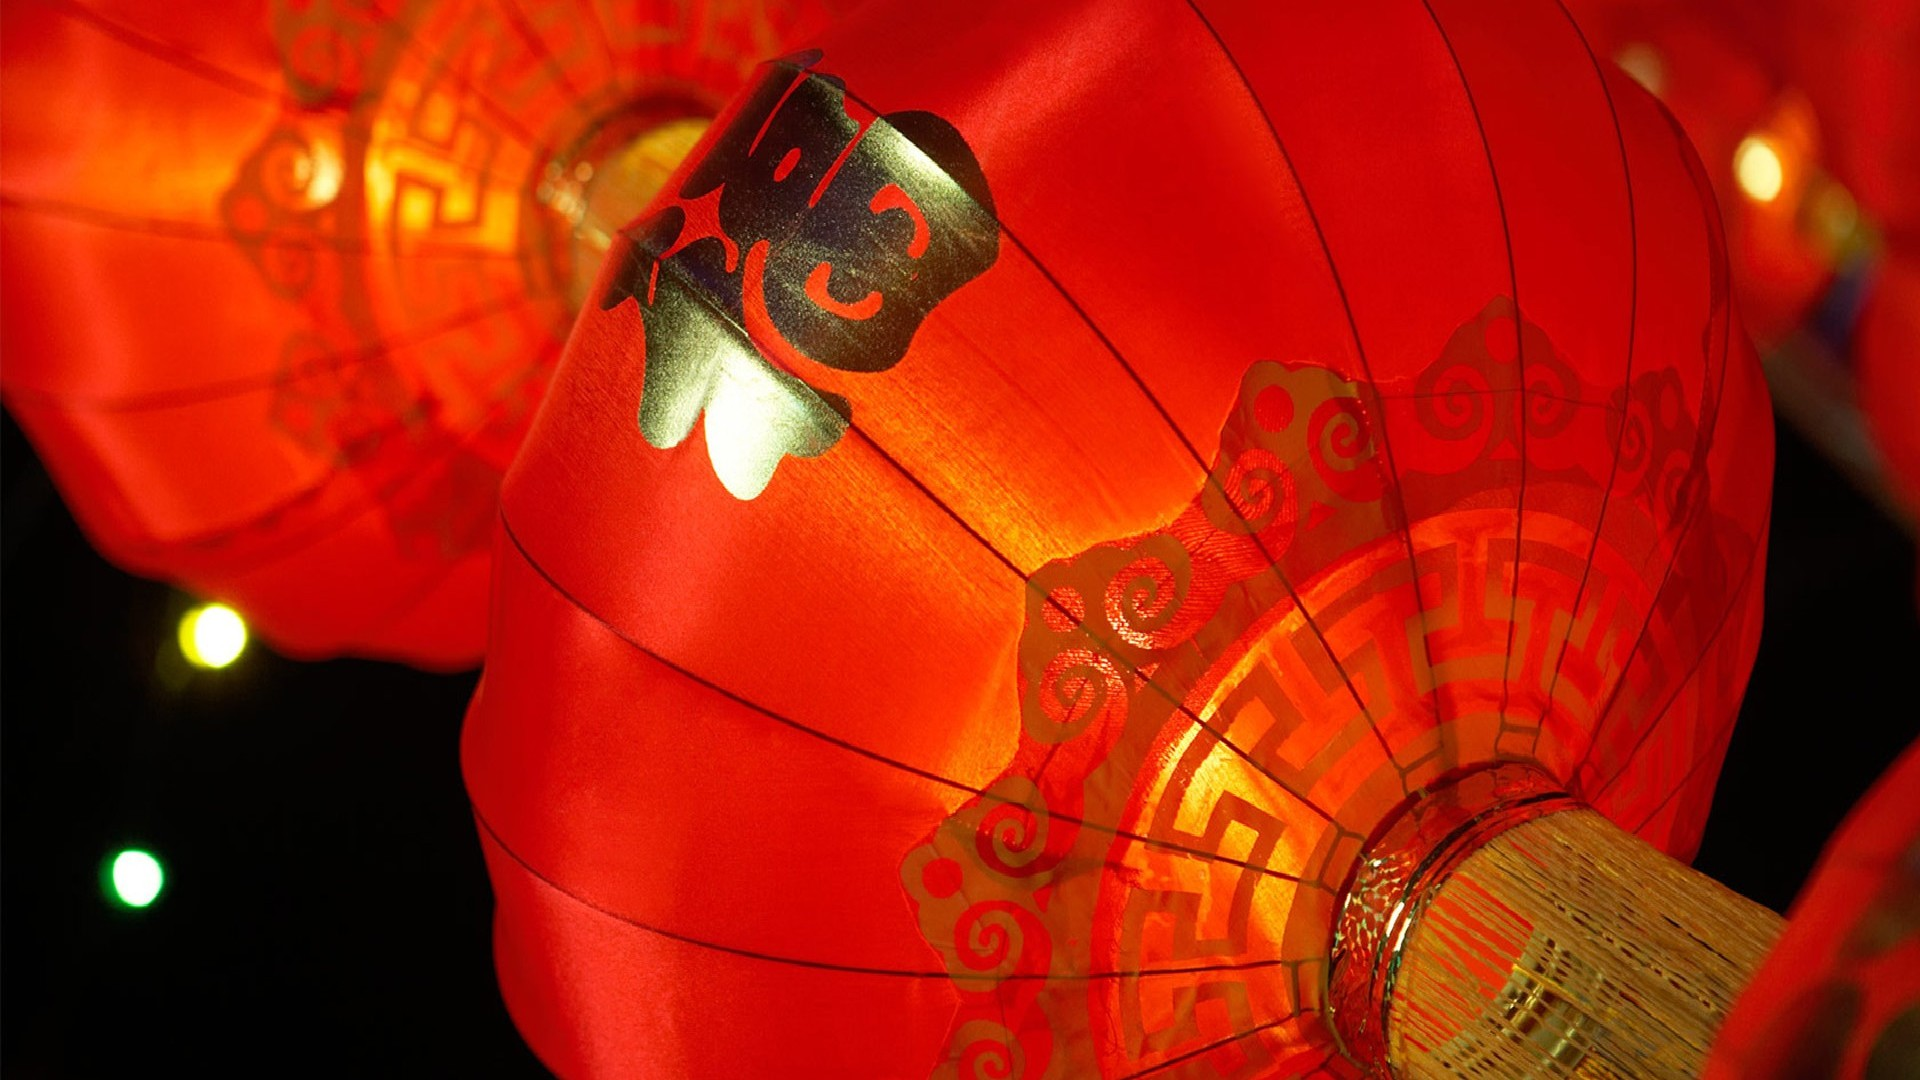 Download Chinese New Year HD Backgrounds Ten HD 1920x1080